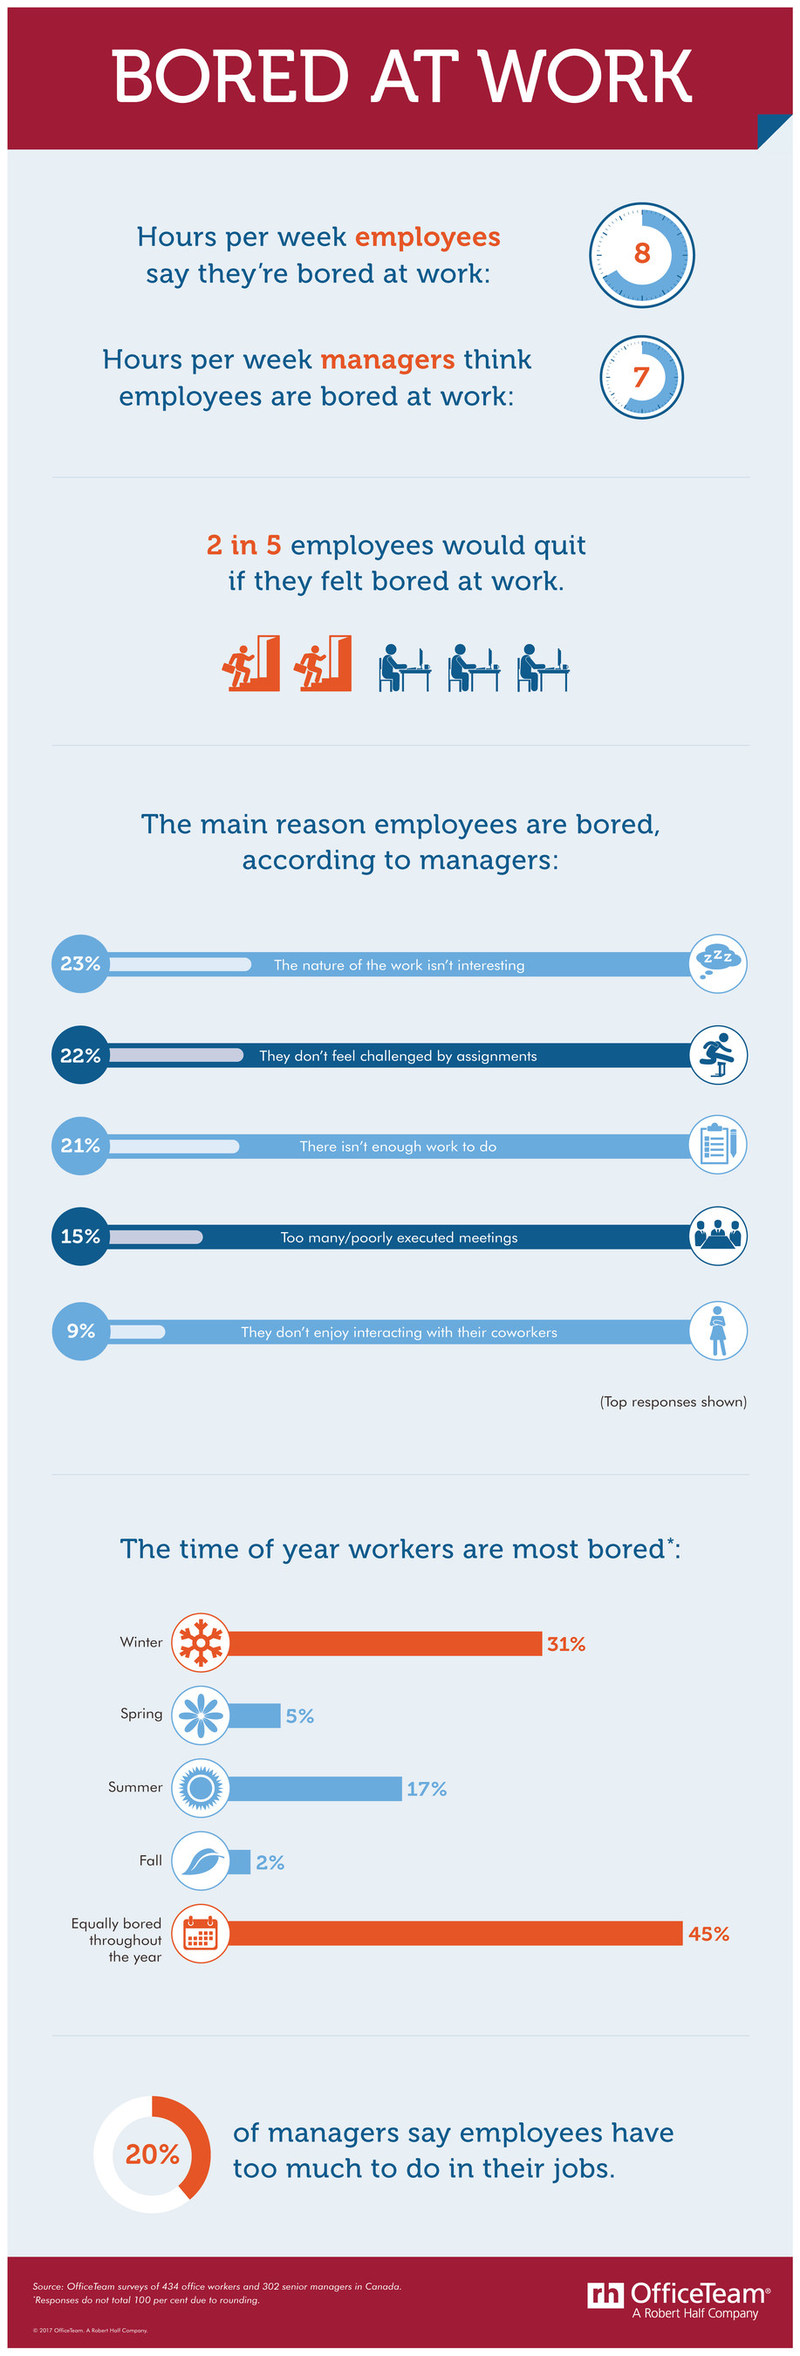 Bored at work? You're not alone. (CNW Group/OfficeTeam)